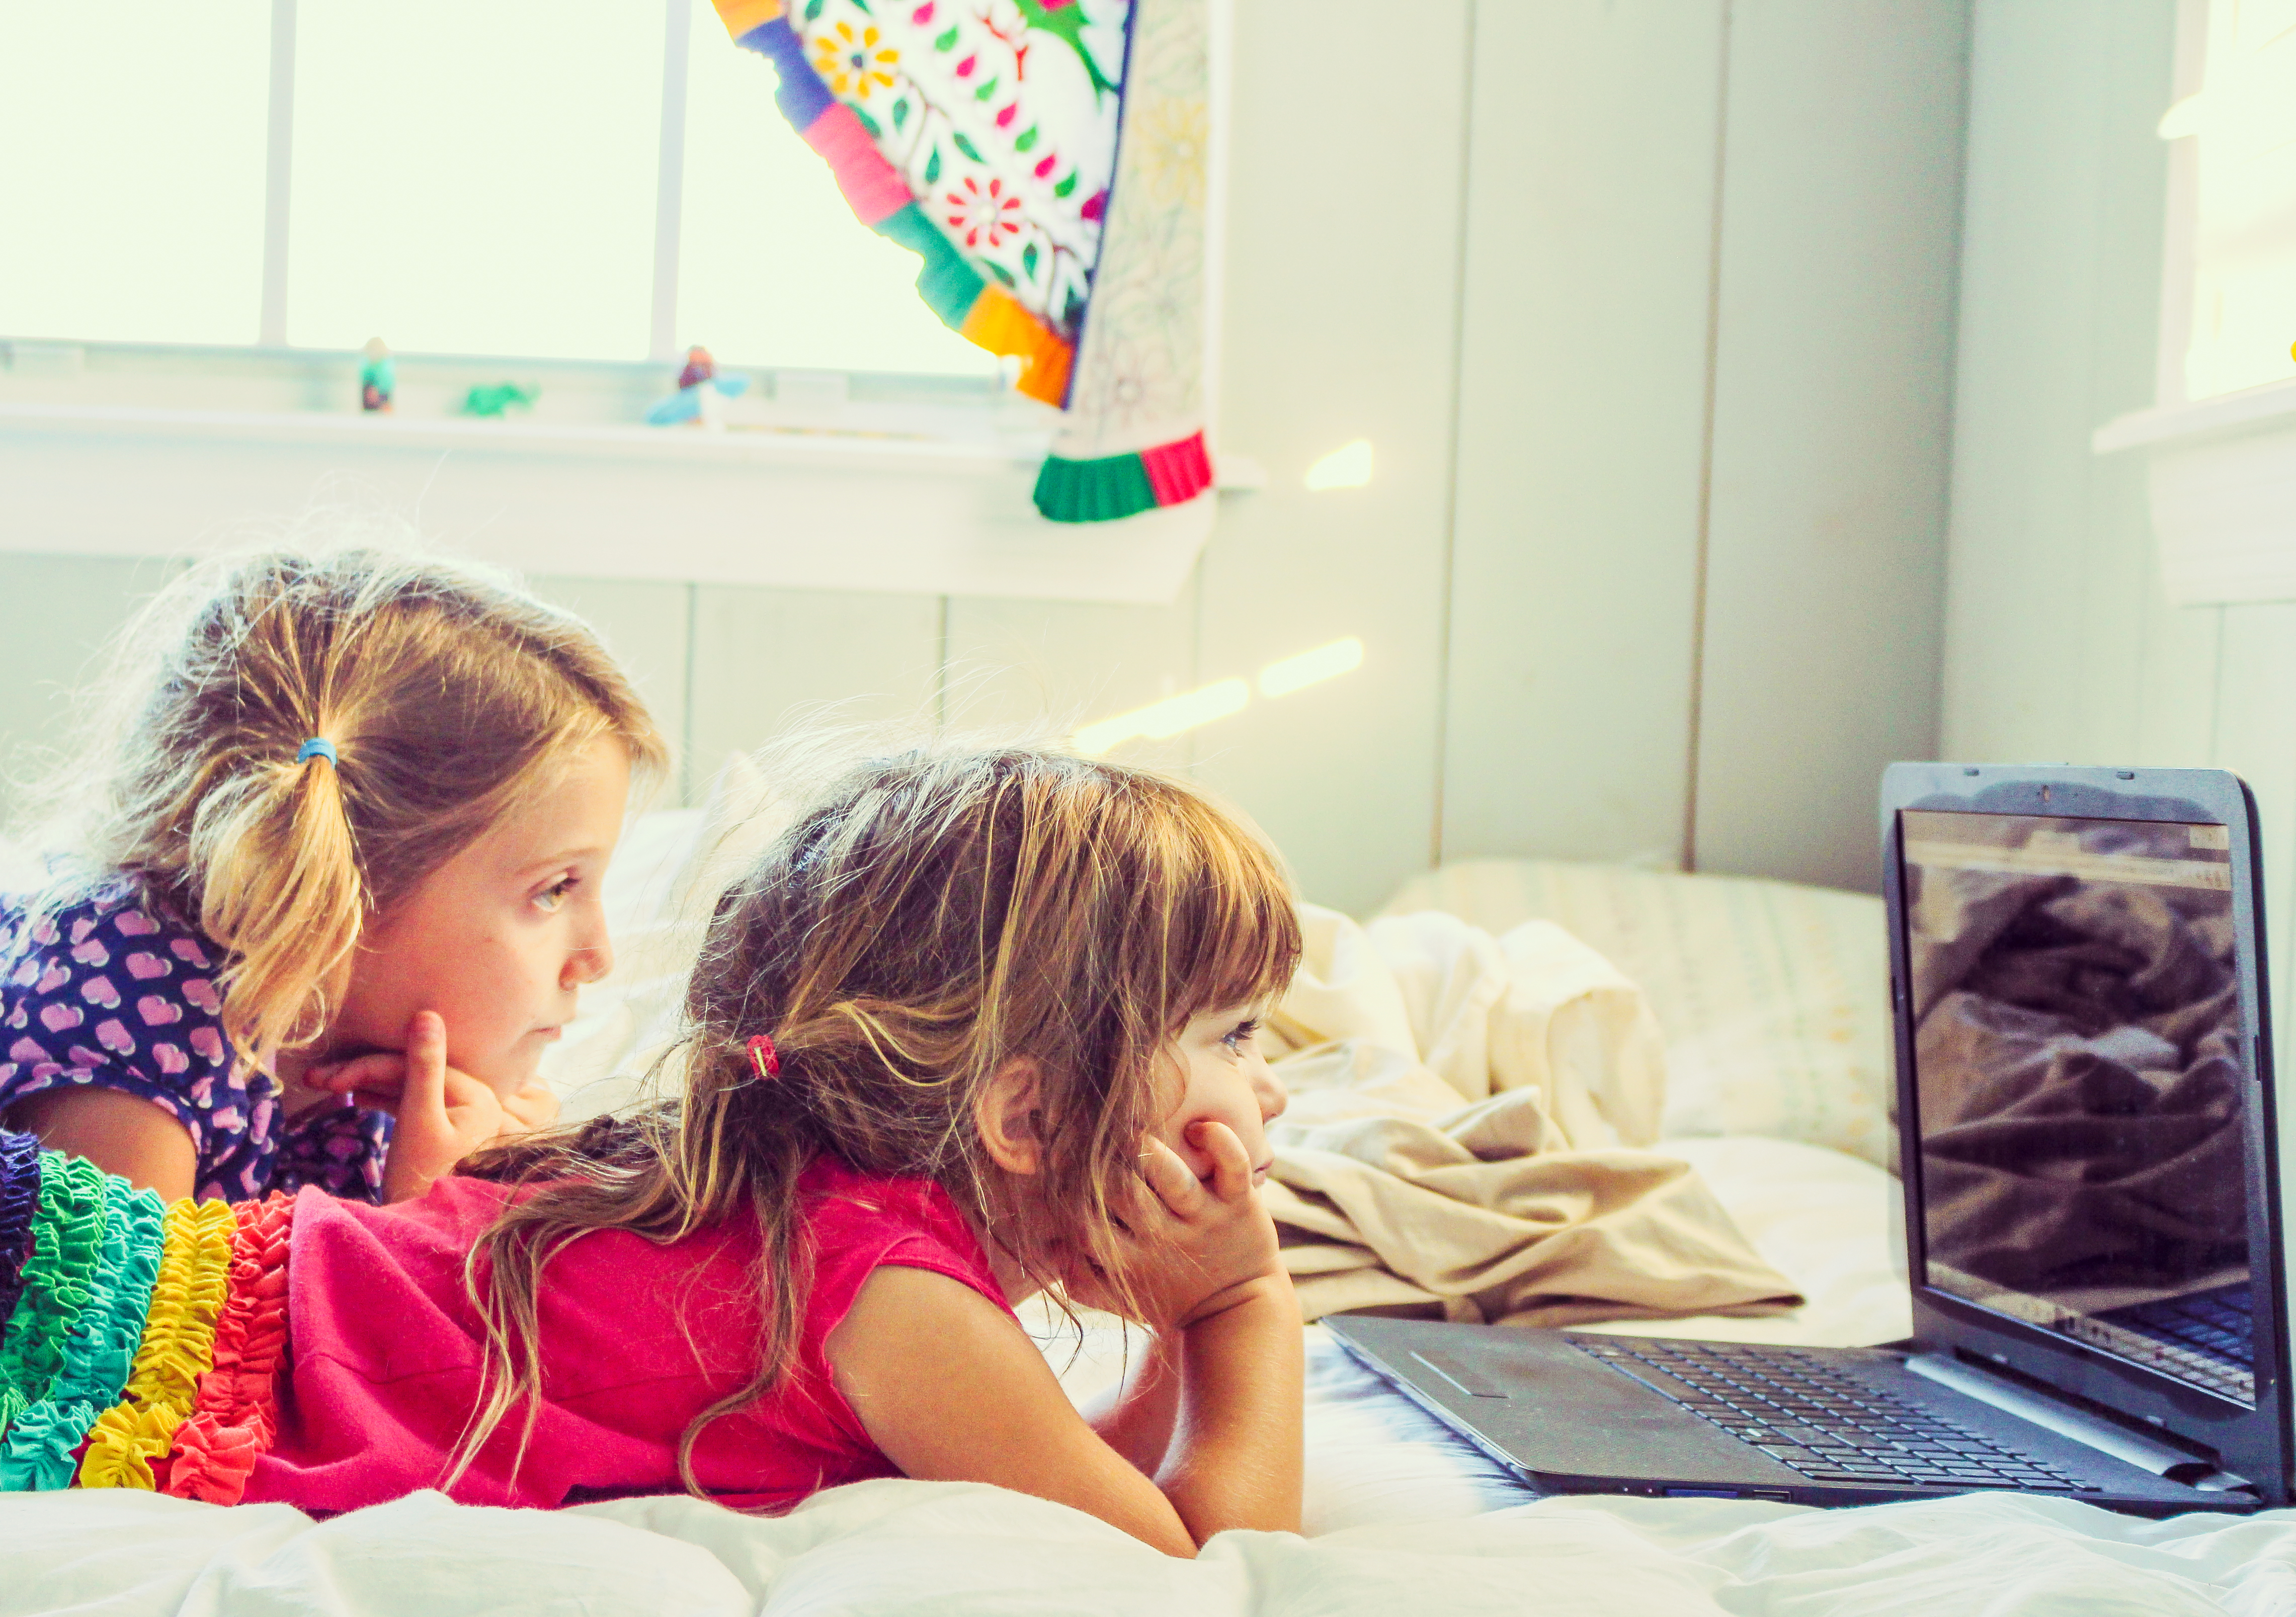 Two Young Girls Watching Television on a Laptop Computer